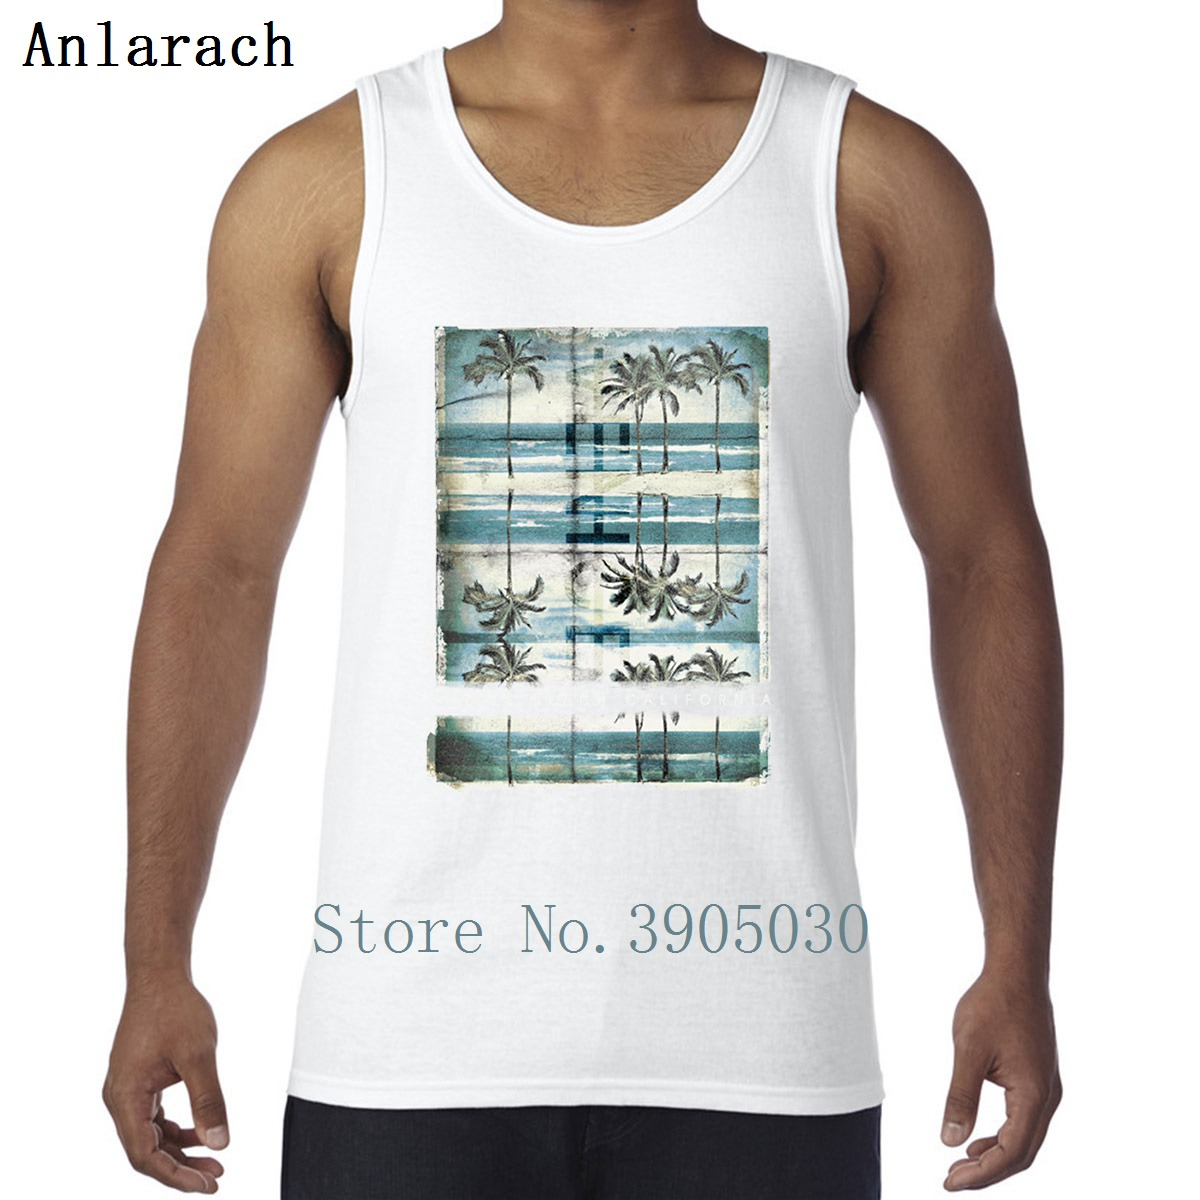 822839576fa0b2 Vintage Palm Tree Venice Summer Beach California Vest Bodybuilding Designer  Slogan Tank Top Men Round Collar Sunlight Workouts-in Tank Tops from Men s  ...